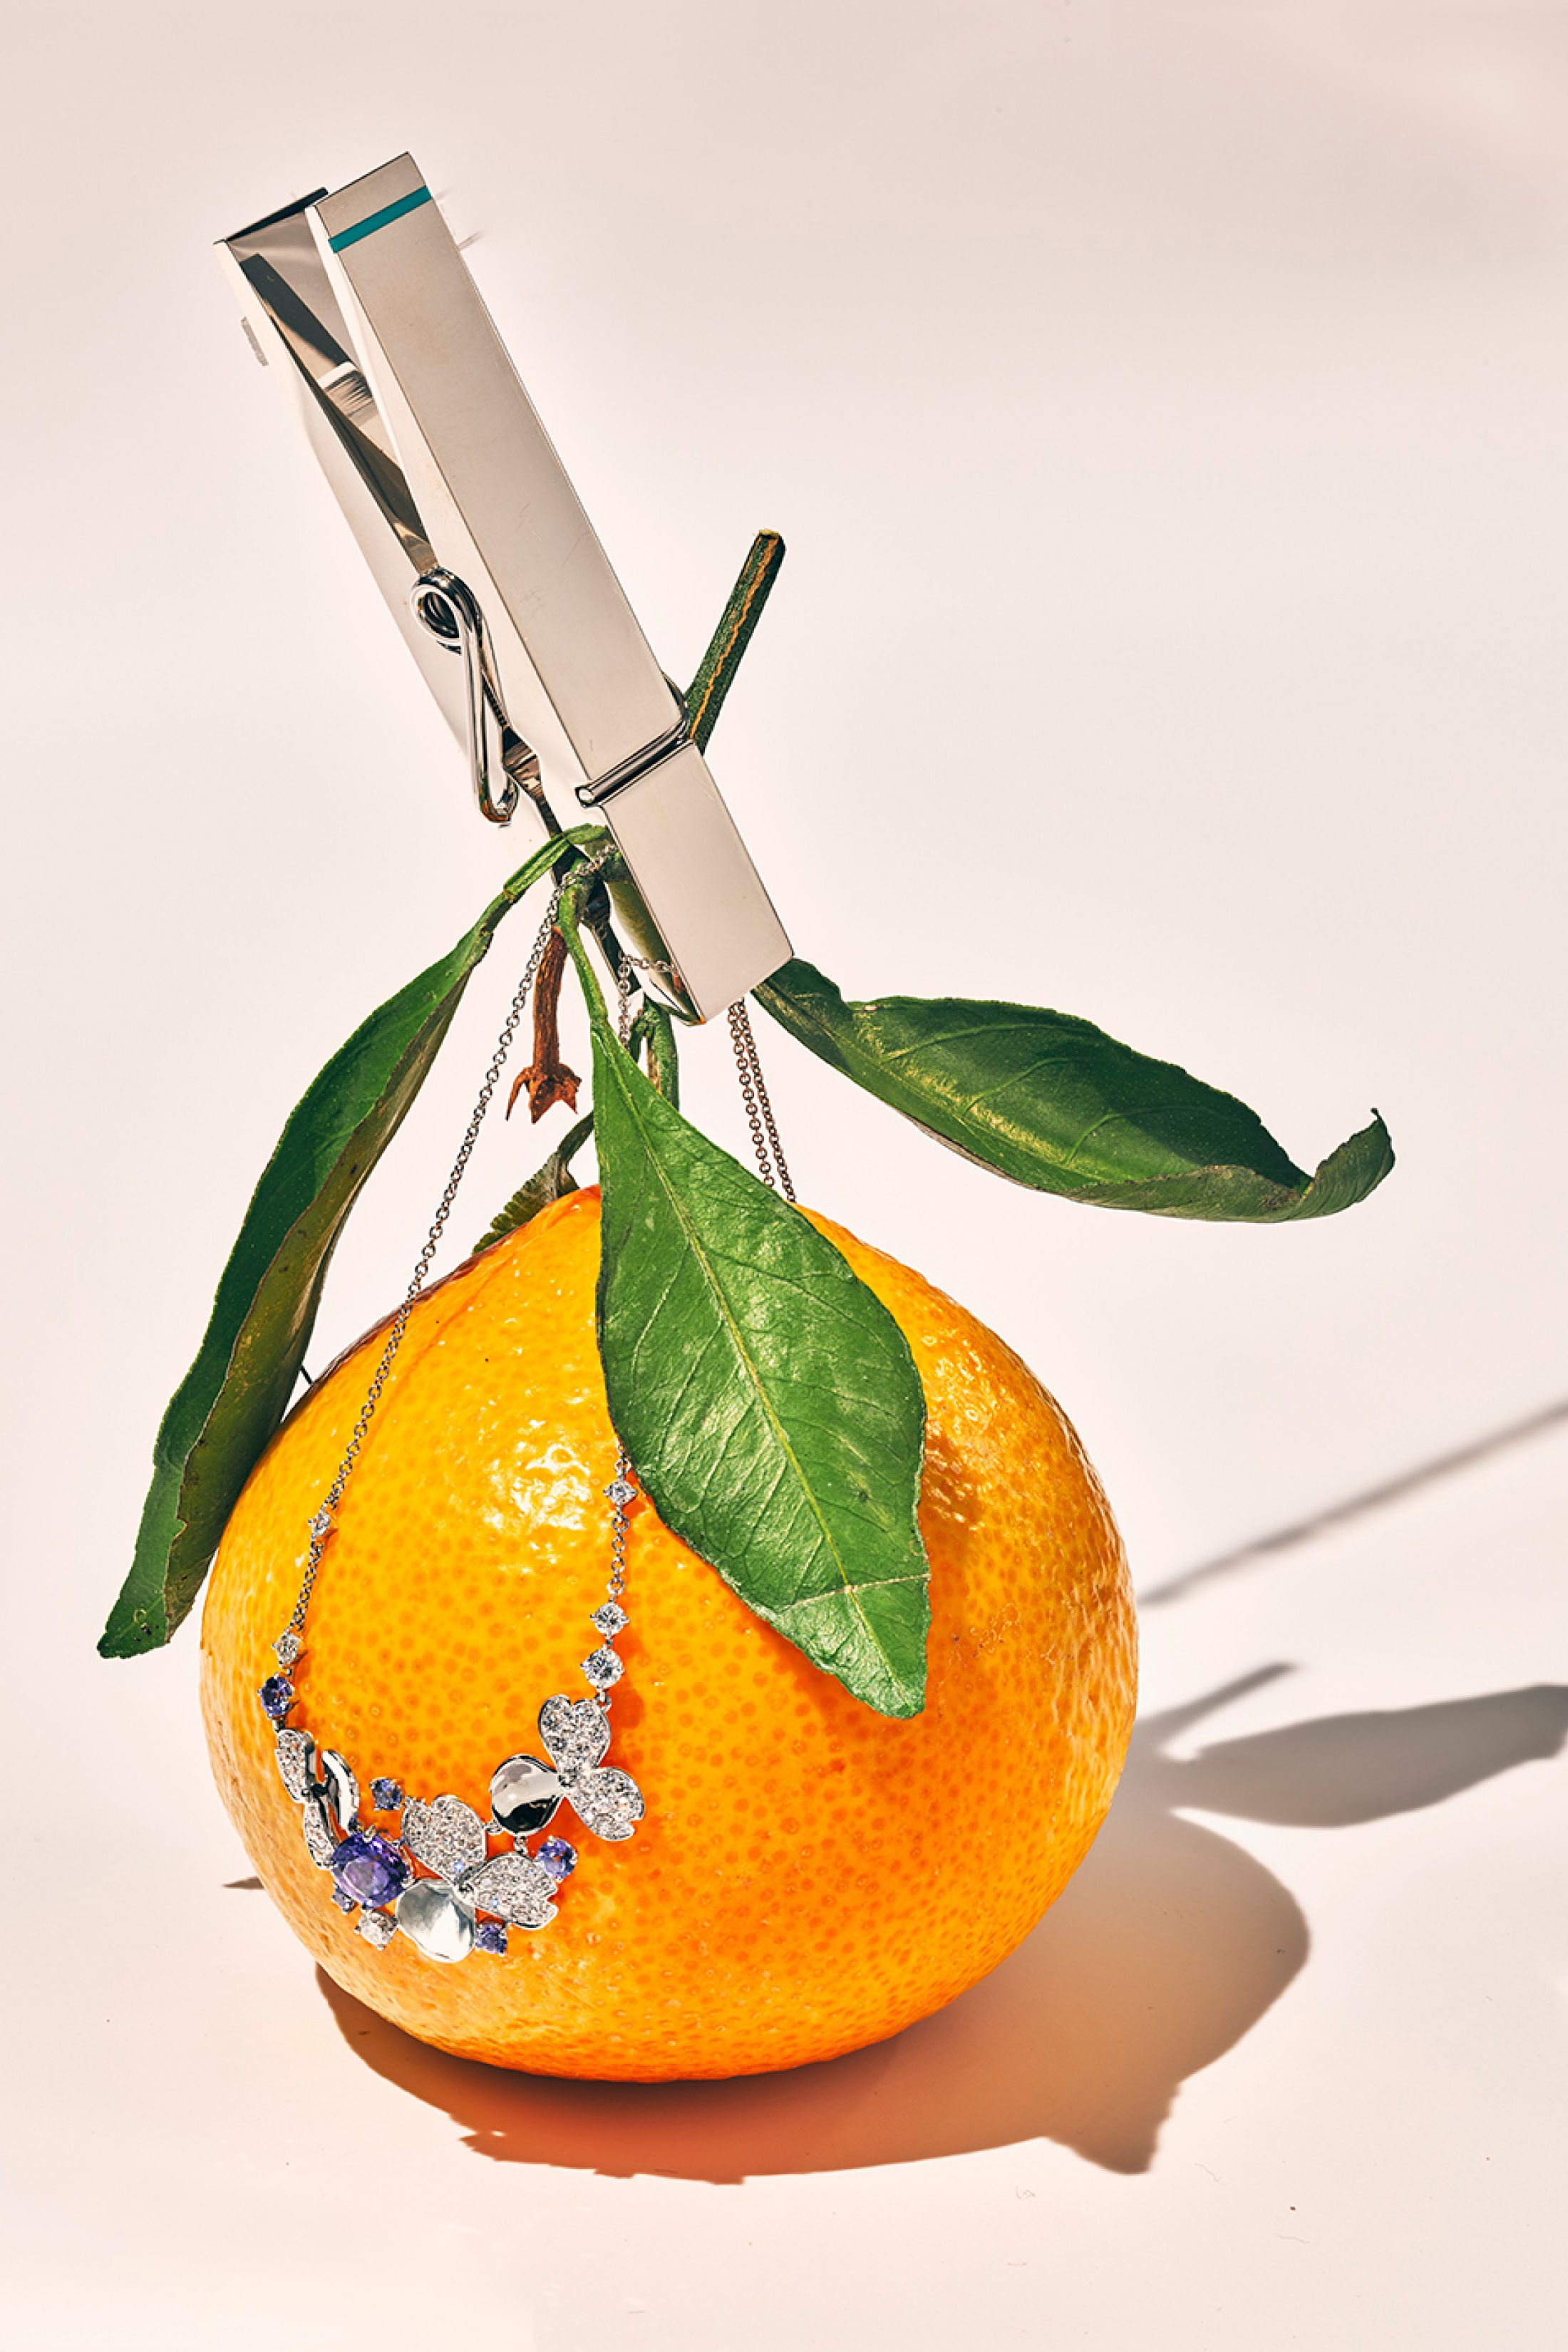 This is Tiffany issue 7 still life photography by Roe Ethridge